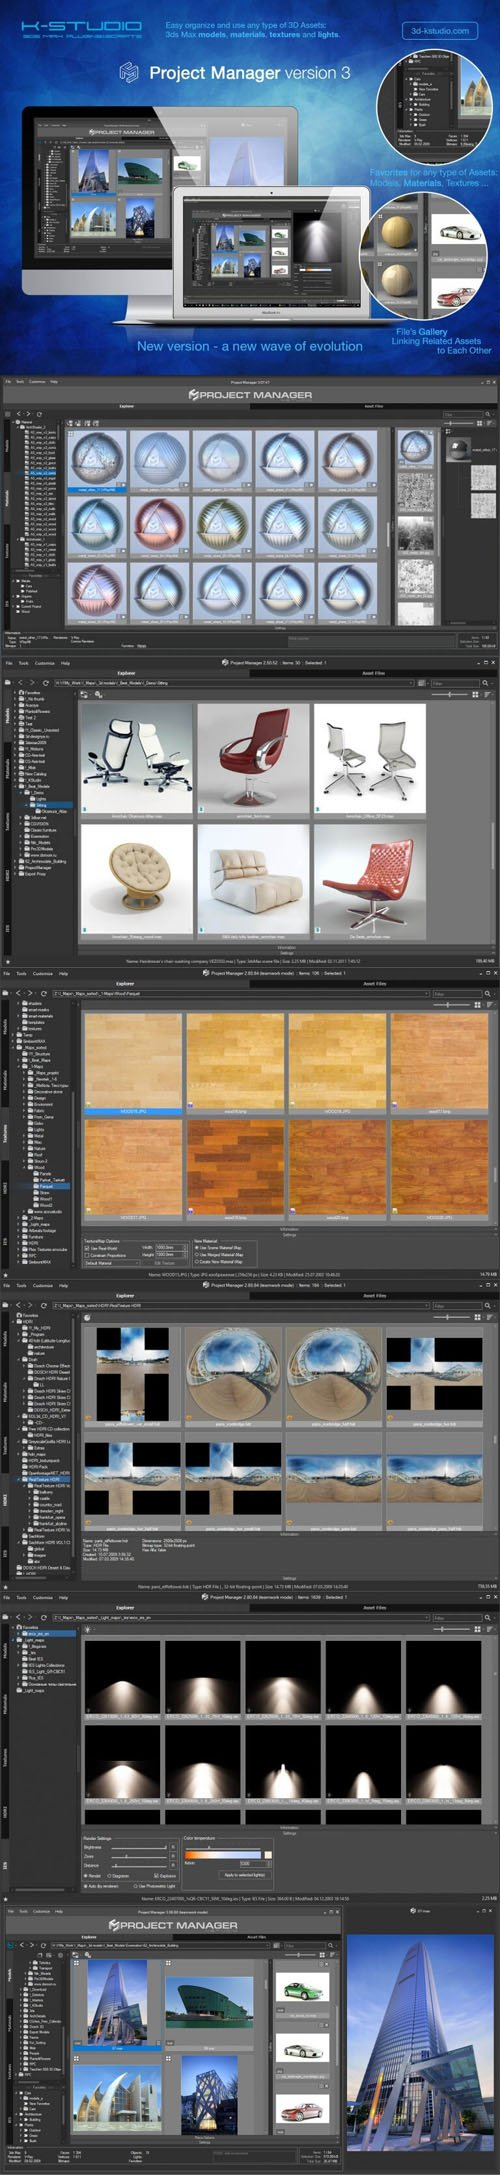 3d-kstudio Project Manager 3.10.32 for 3ds Max 2014-2021